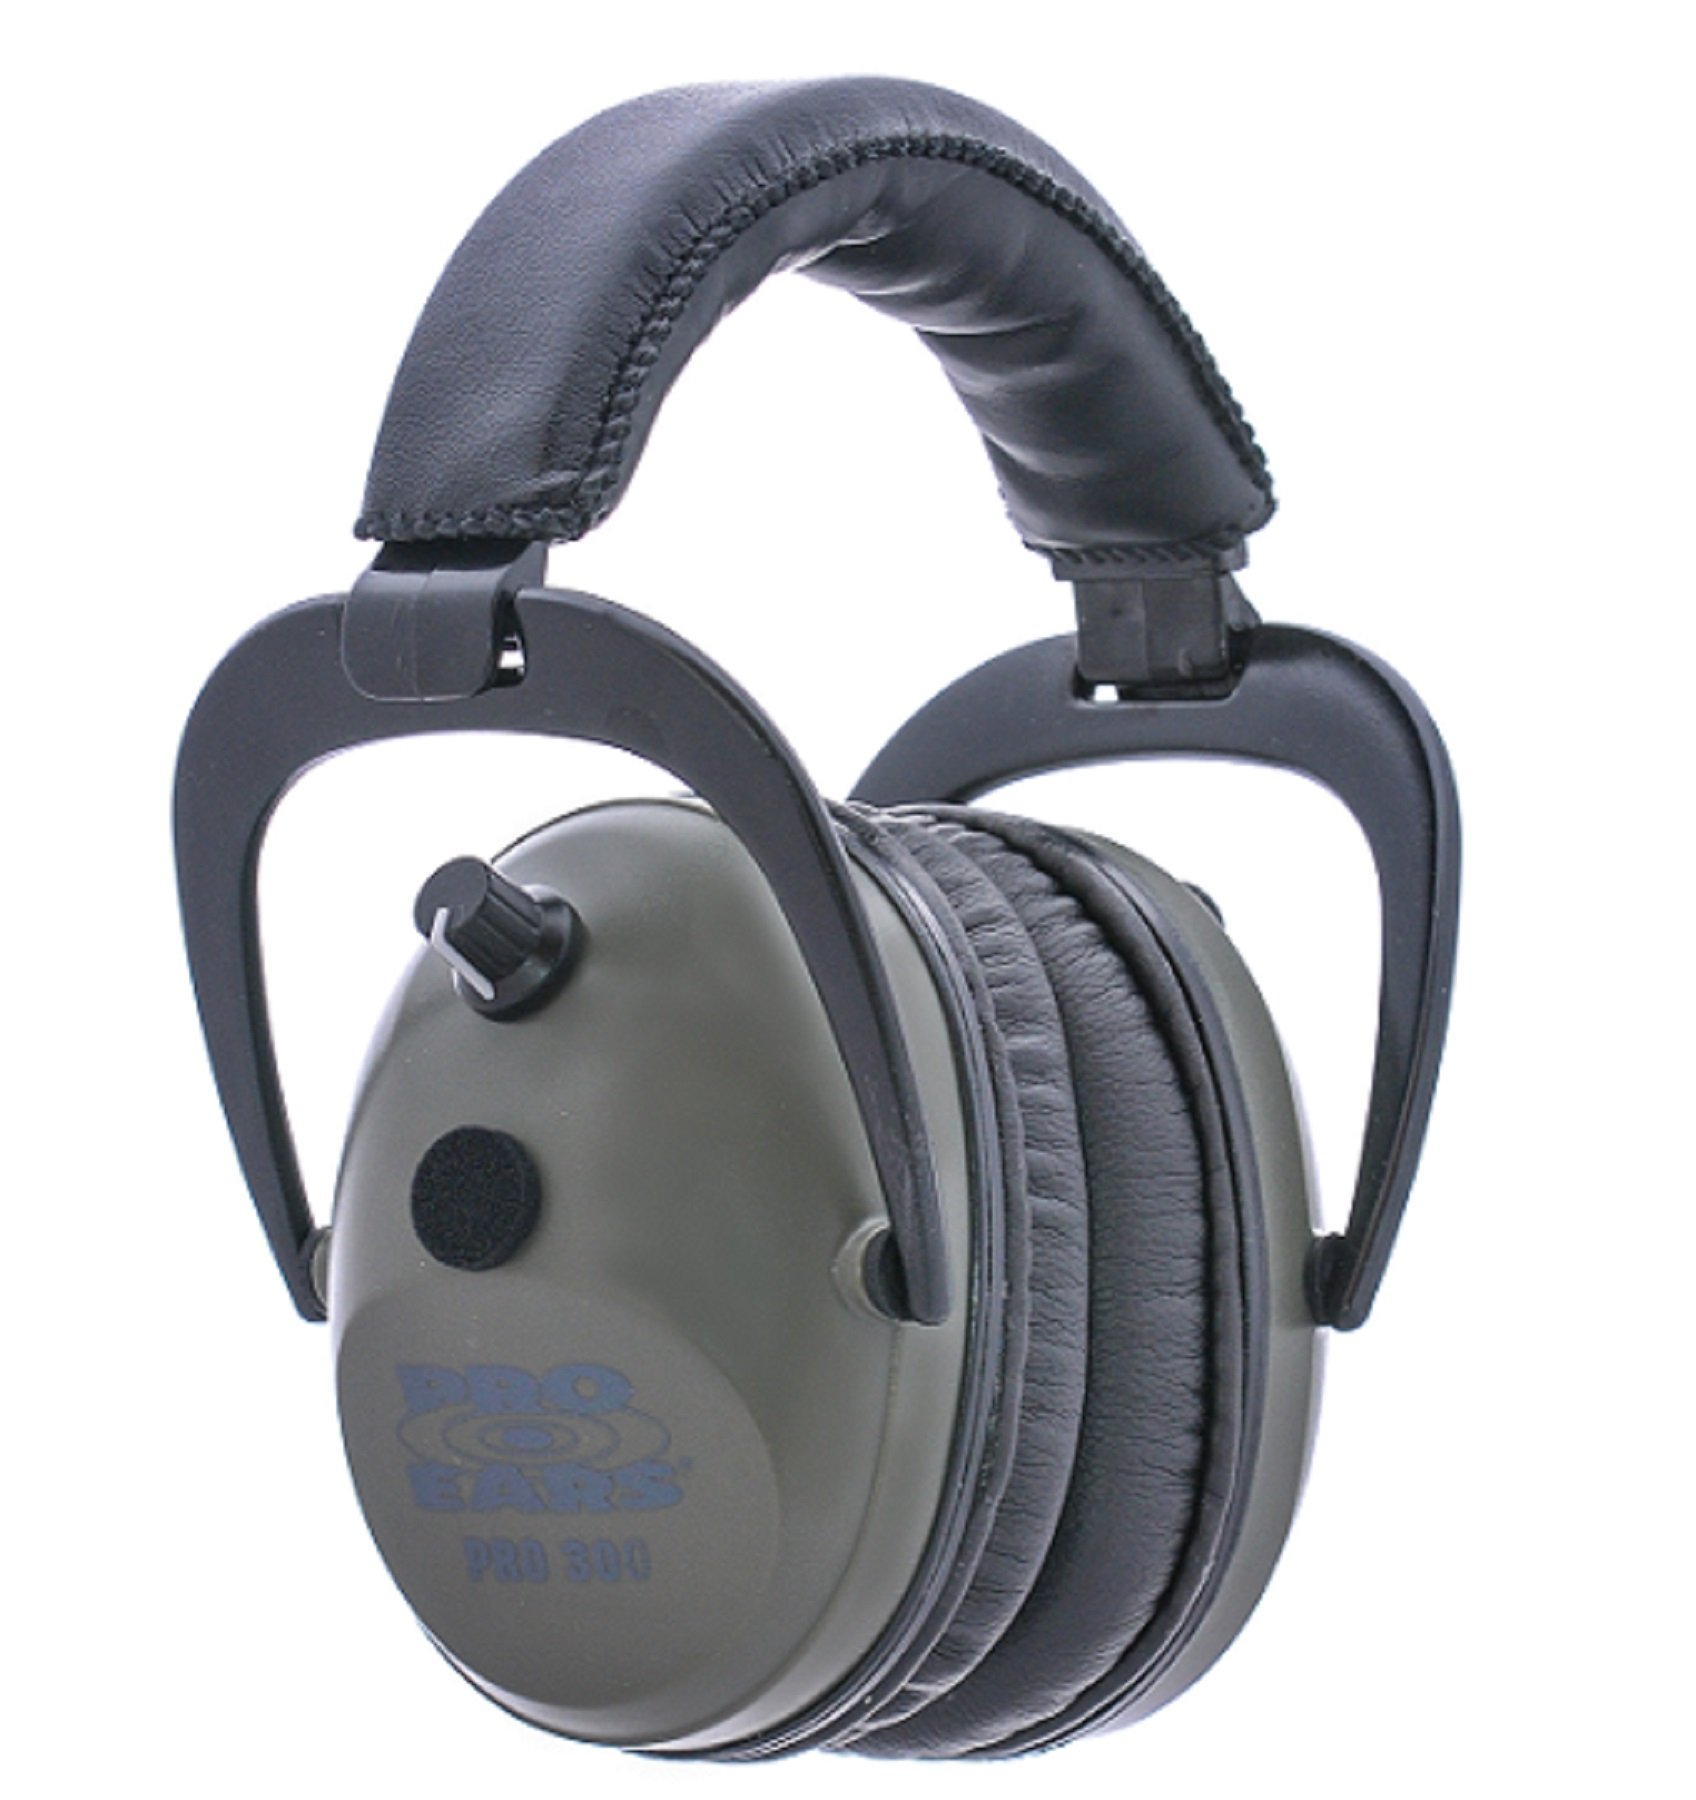 Pro Ears PT300G Pro Tac 300, Noise Reduction Rating 26DB, Green by Pro Ears